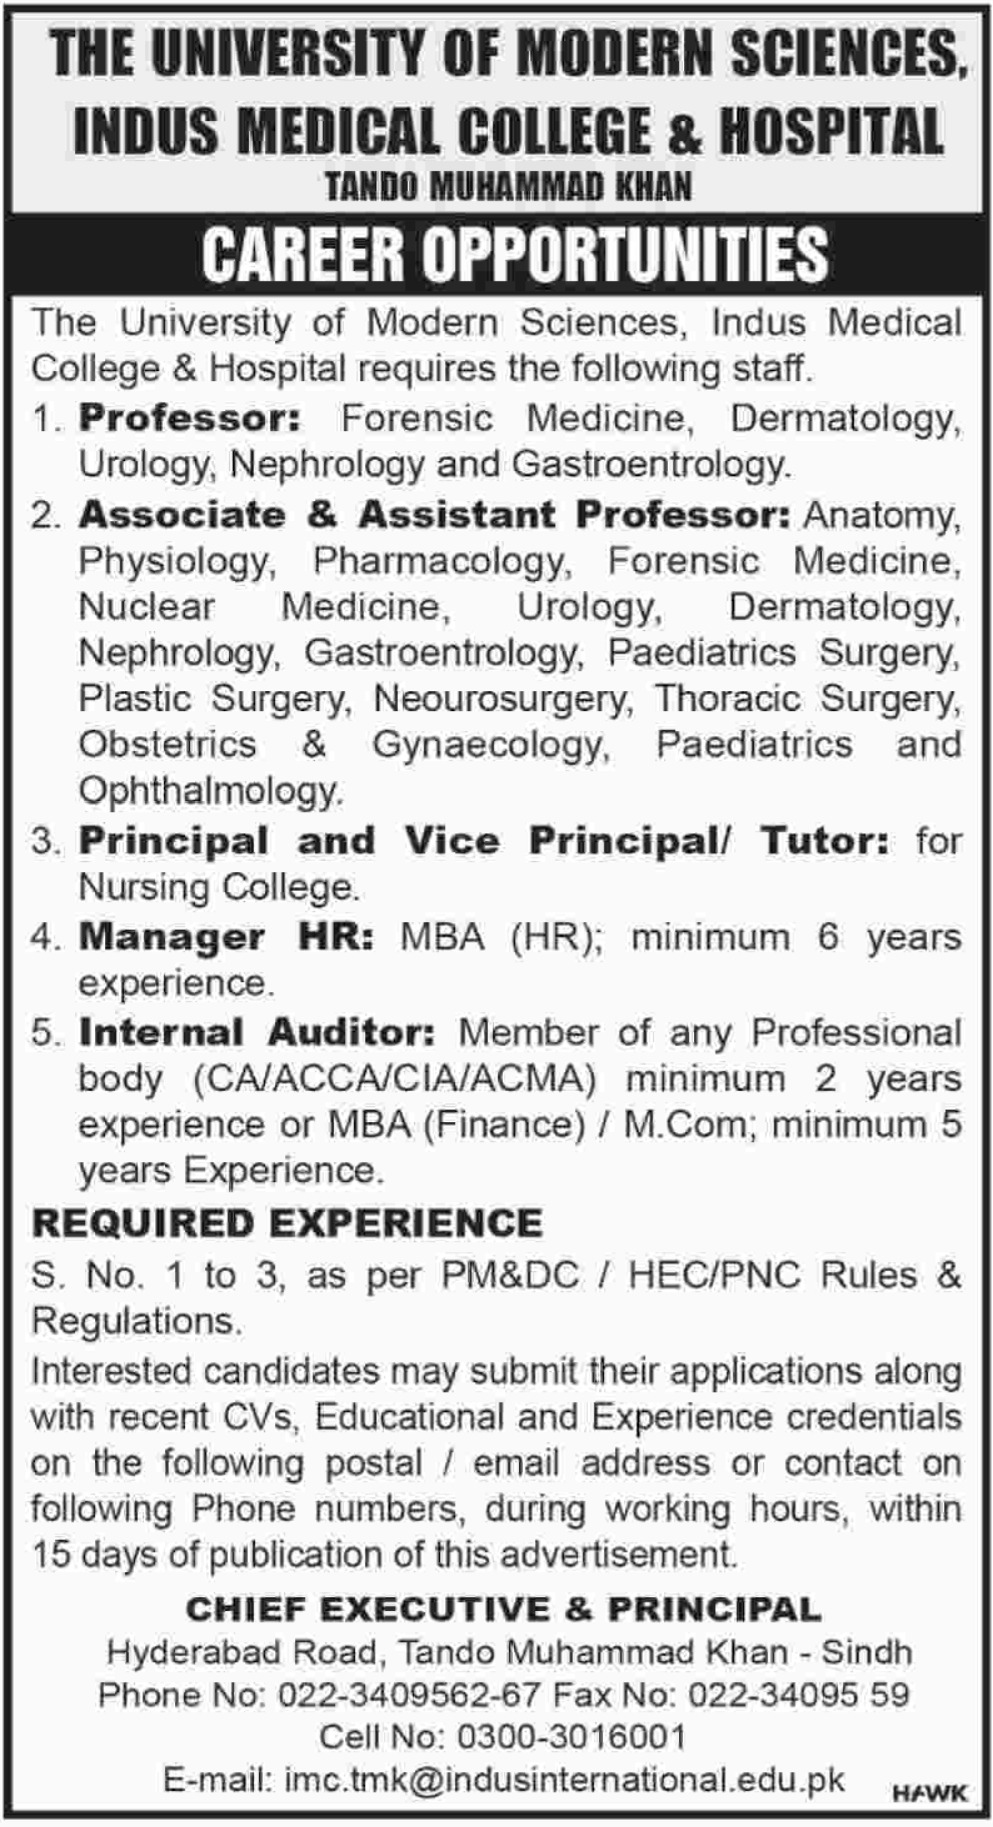 Indus Medical College & Hospital Tando Muhammad Khan Jobs 2019 University of Modern Sciences